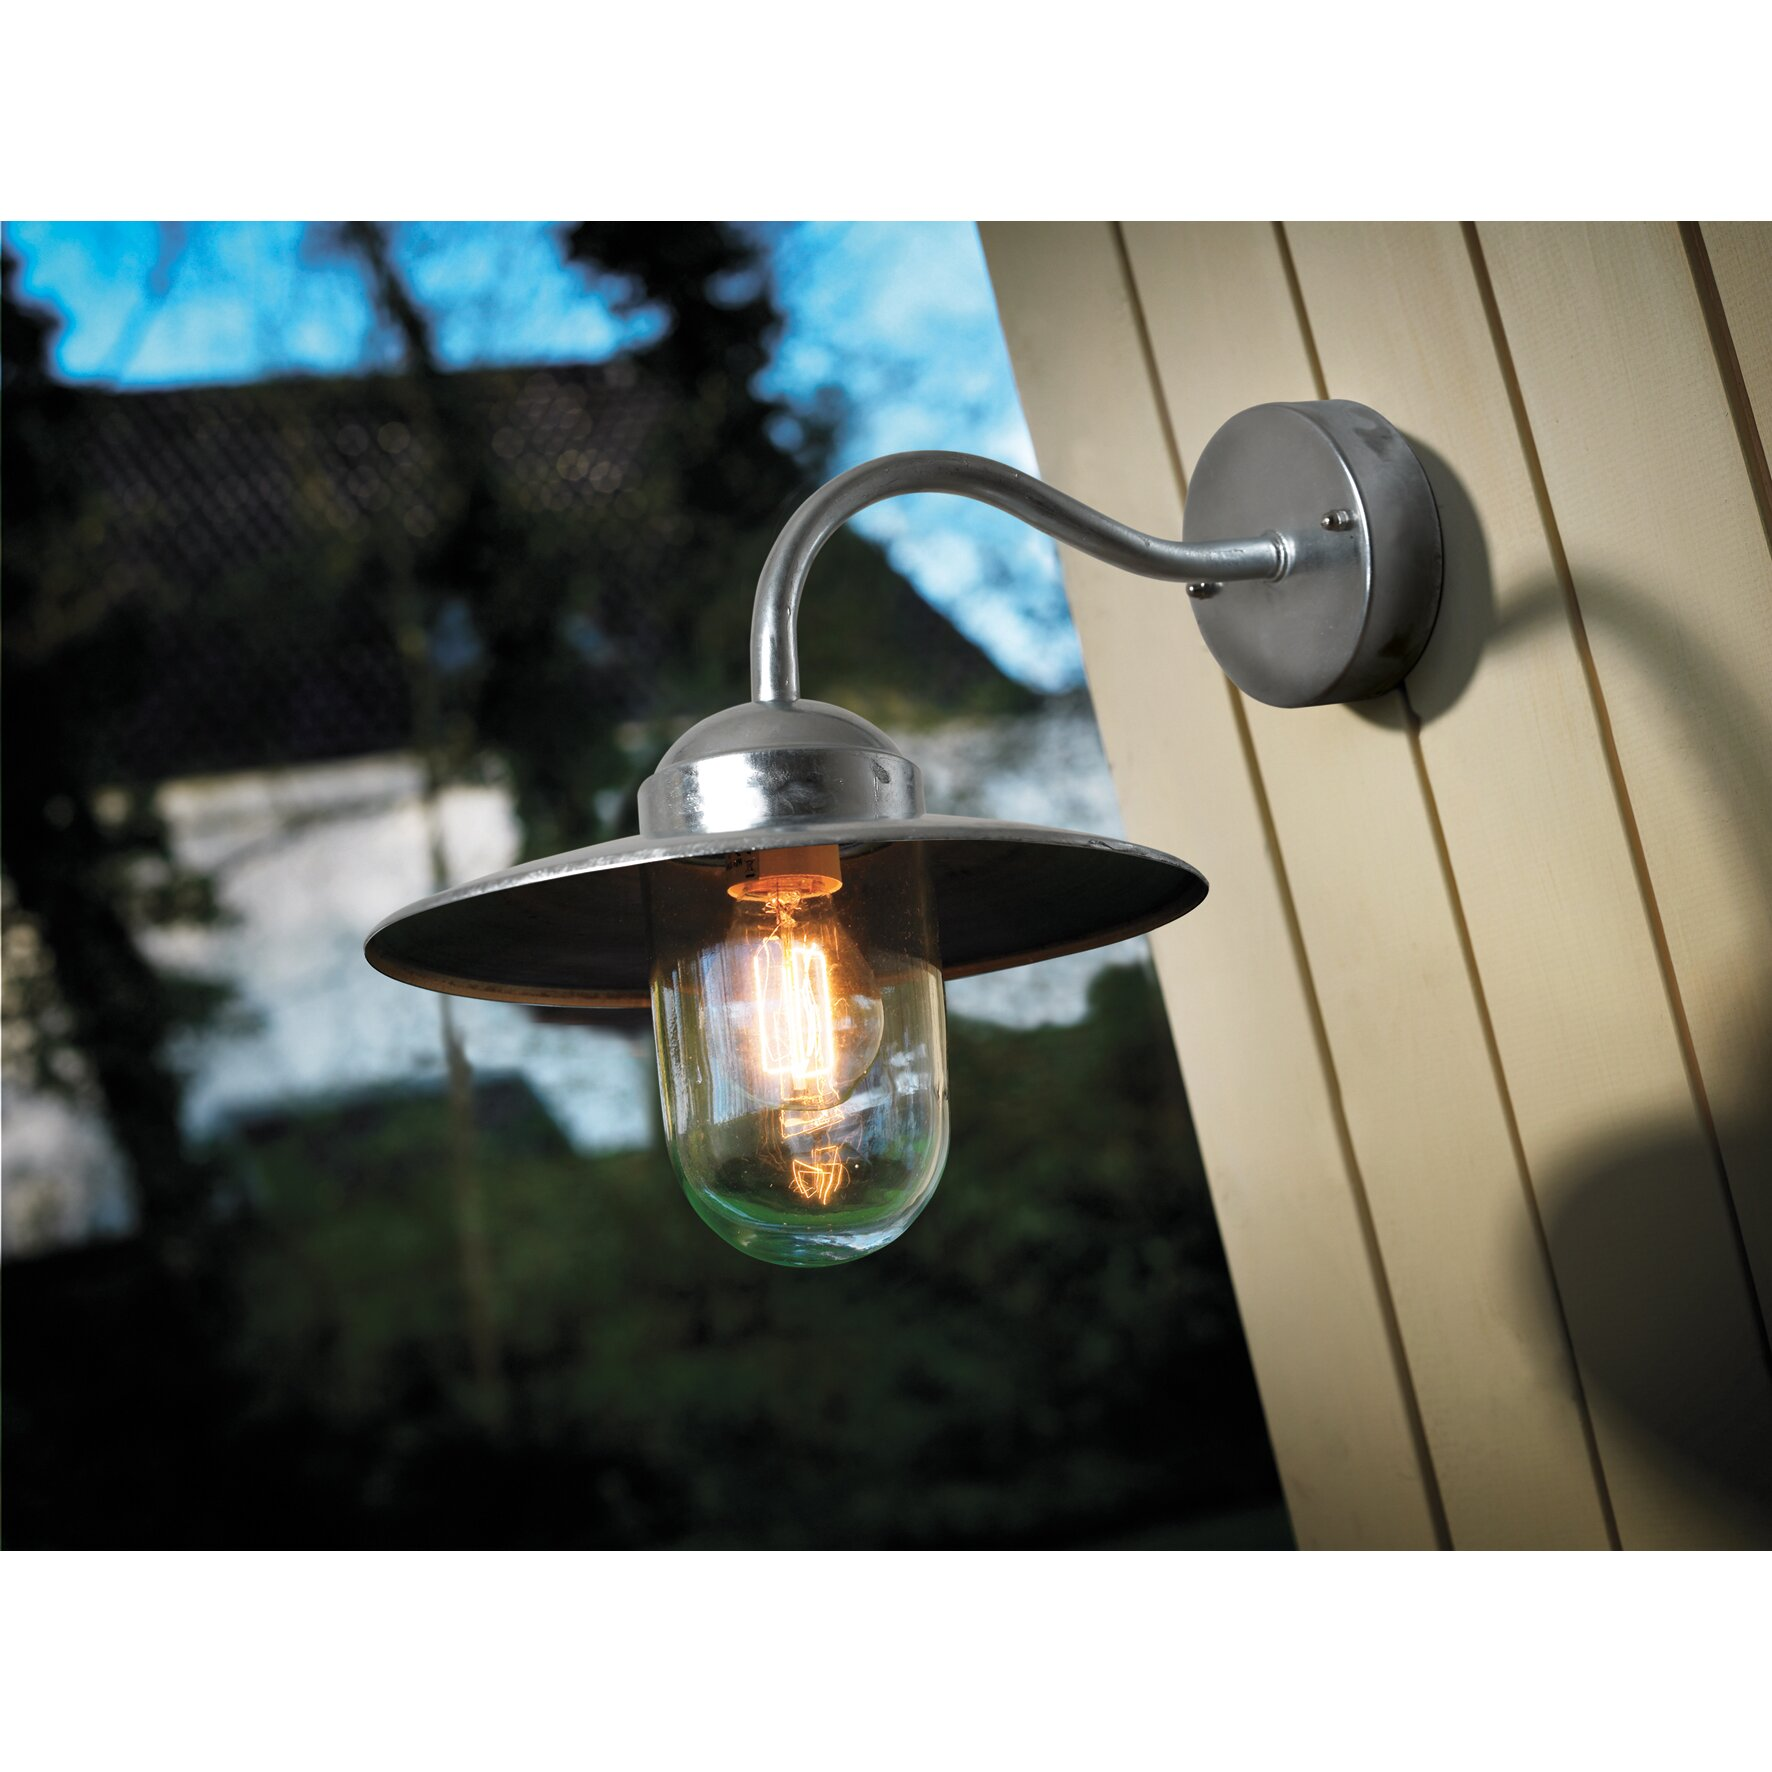 Nordlux Luxembourg Outdoor Wall Light With Pir Sensor Black : Nordlux Luxembourg 1 Light Outdoor Fisherman Light & Reviews Wayfair.co.uk